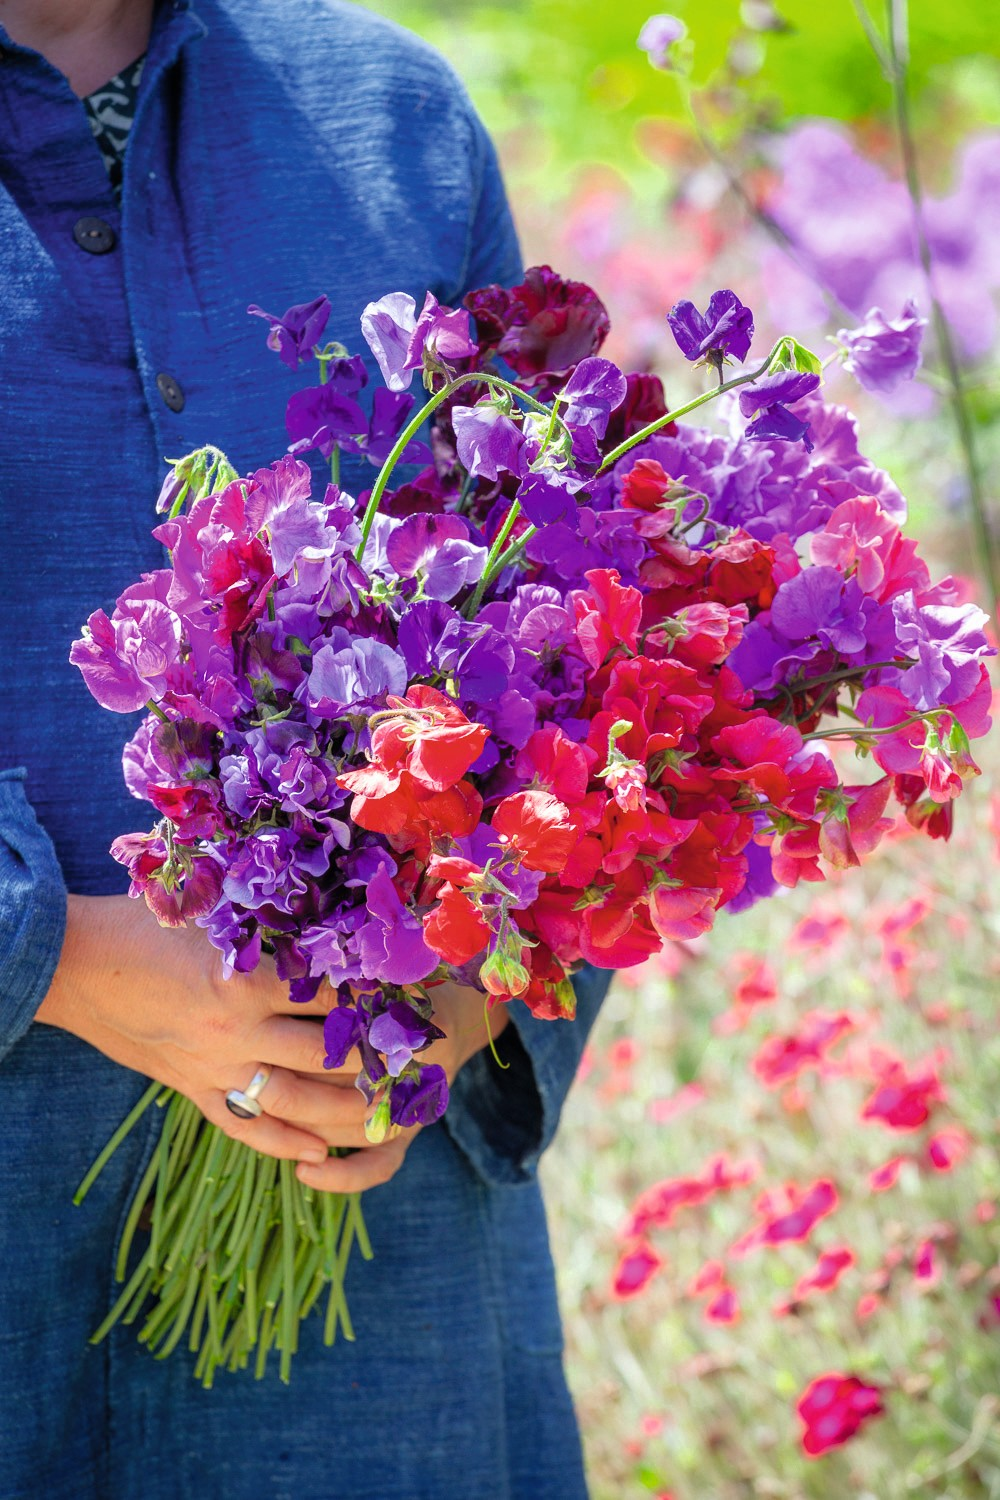 Bunch of sweet peas. Lathyrus odoratus 'Bouquet Crimson', 'North Shore', 'Bouquet Navy', 'Pip's Maroon', 'Millenium' and 'Richard and Judy'